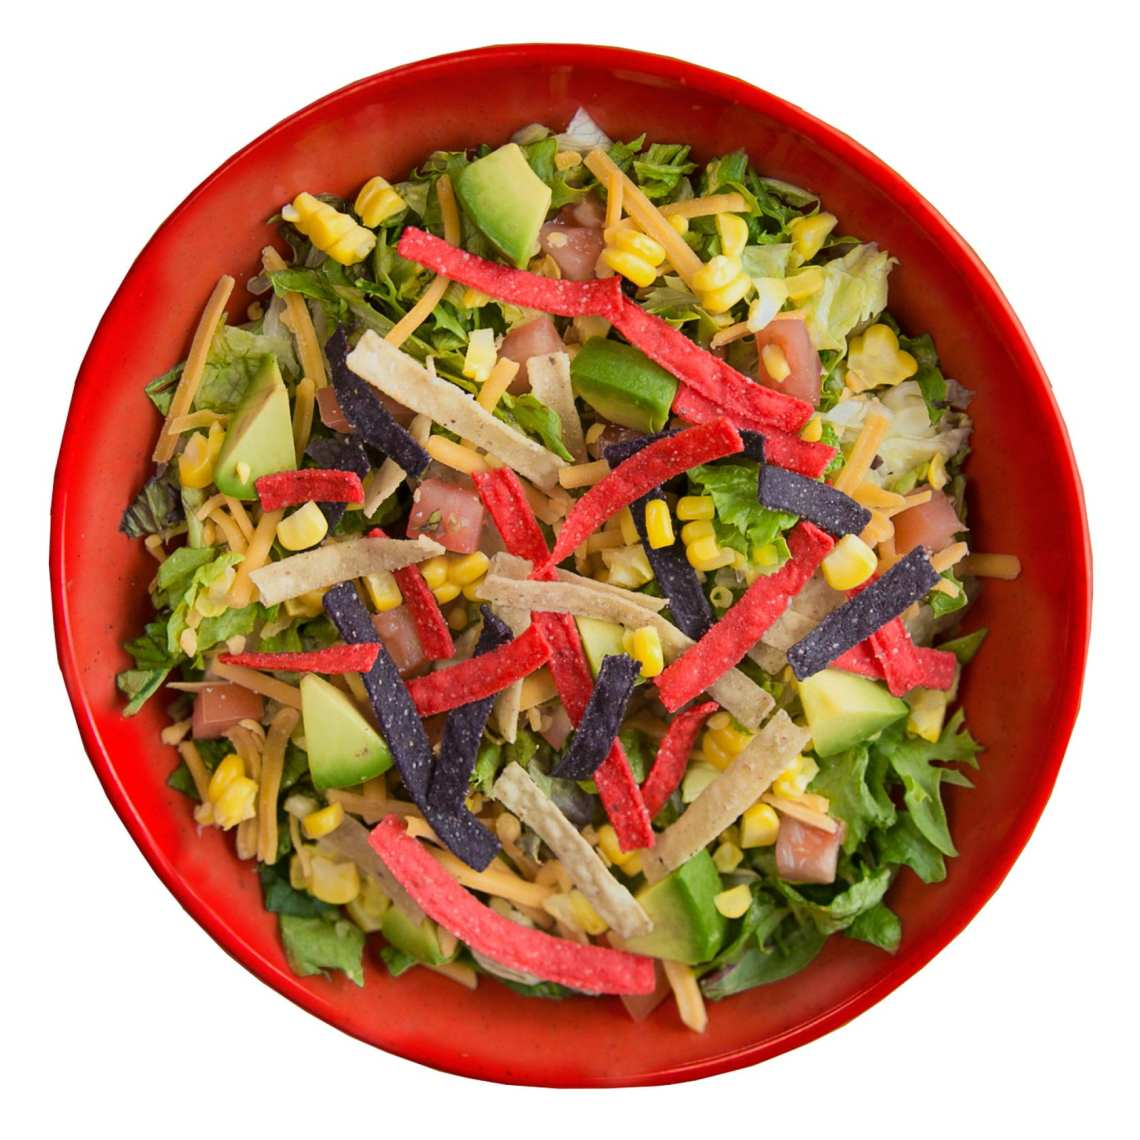 Crushed Red South Of The Border Urban Crafted Salad